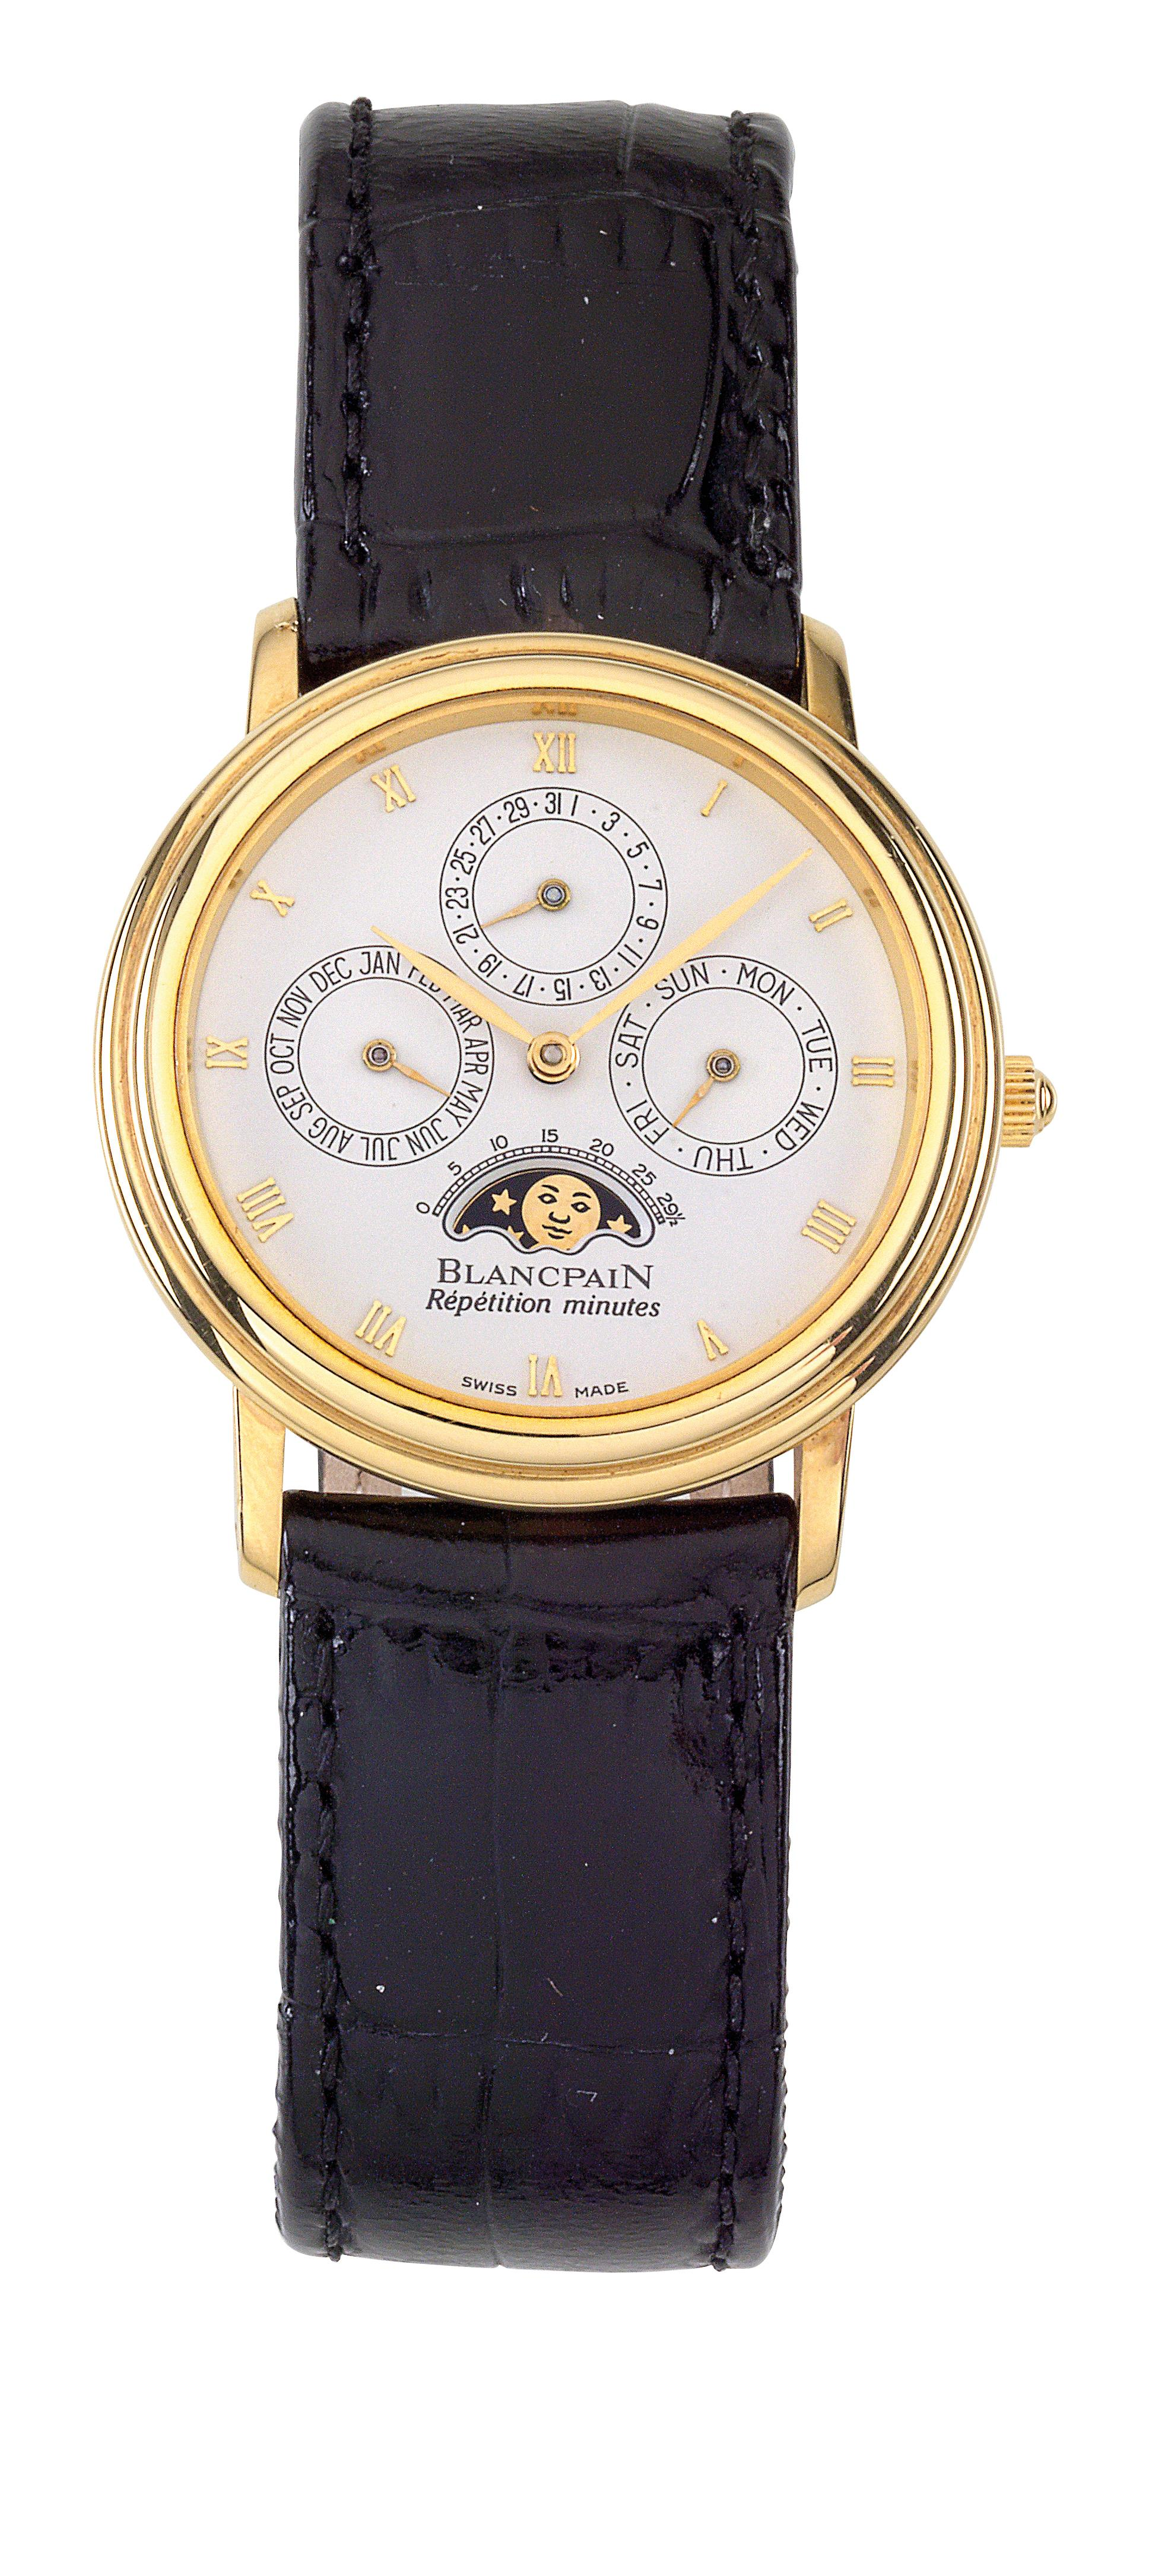 Blancpain Perpetual Calendar Repetition Minutes - Wrist- and